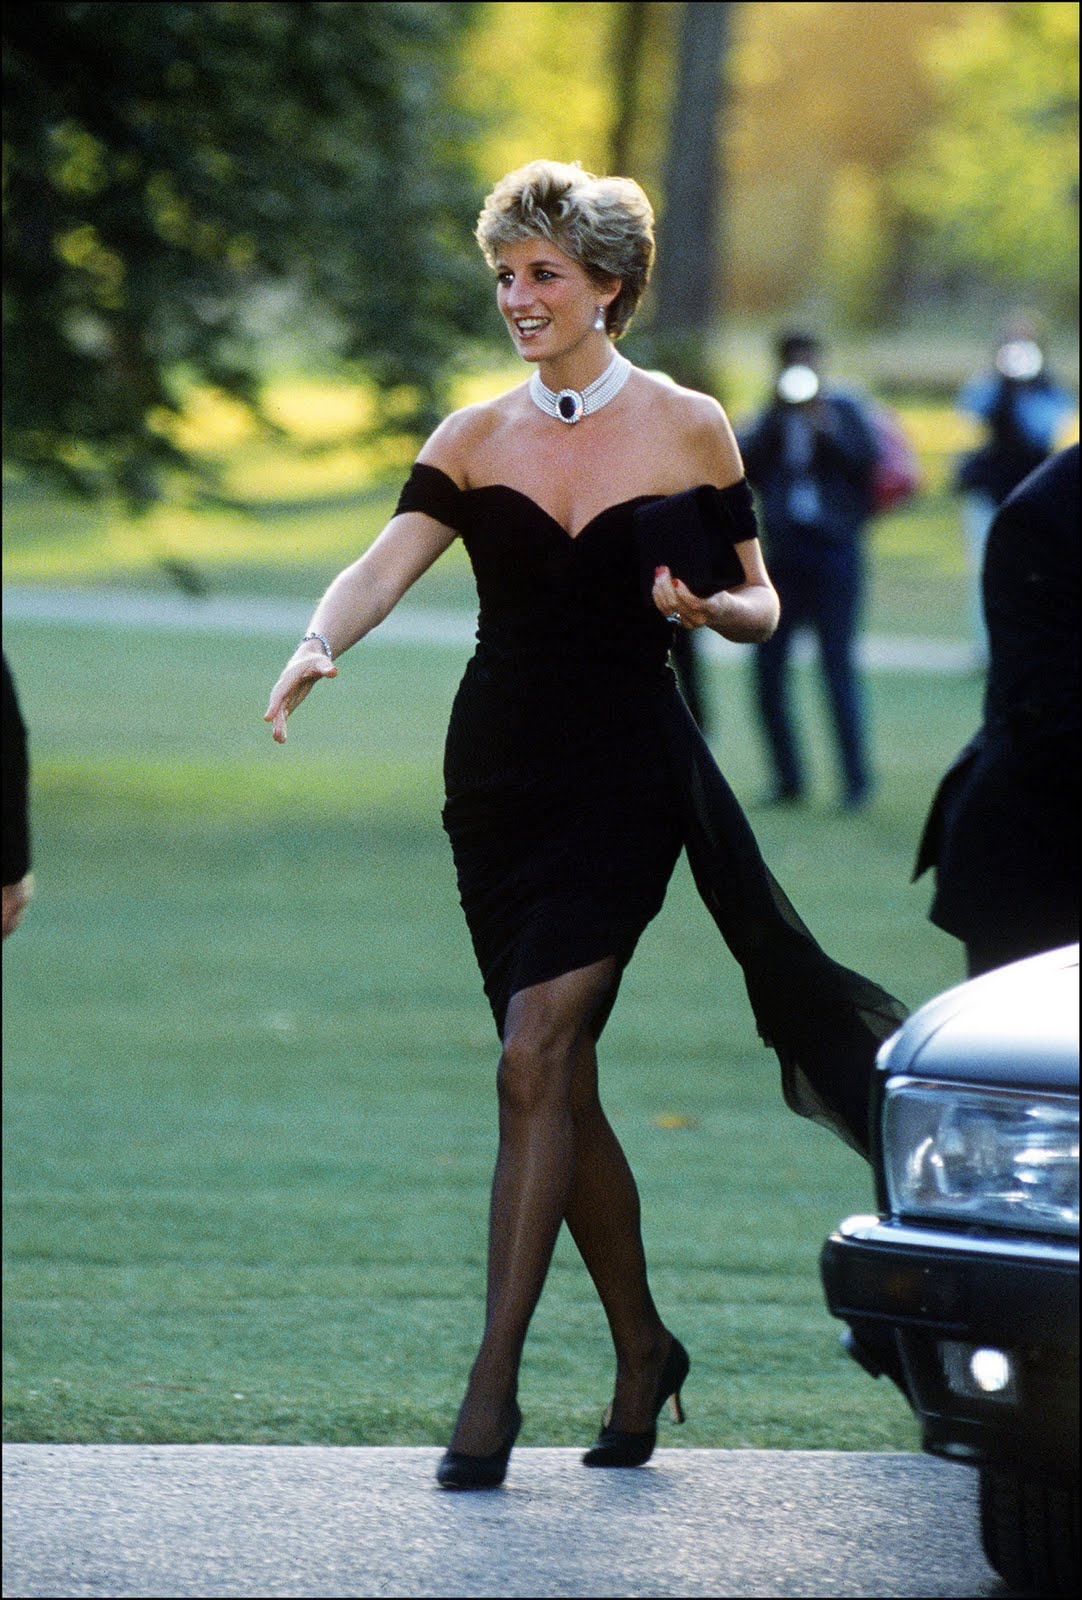 http://1.bp.blogspot.com/-uO14lYFdMiQ/TgzPLwj6HSI/AAAAAAAAAKA/30Xk3Dcy3Tc/s1600/princess_diana_cocktail_dress.jpg